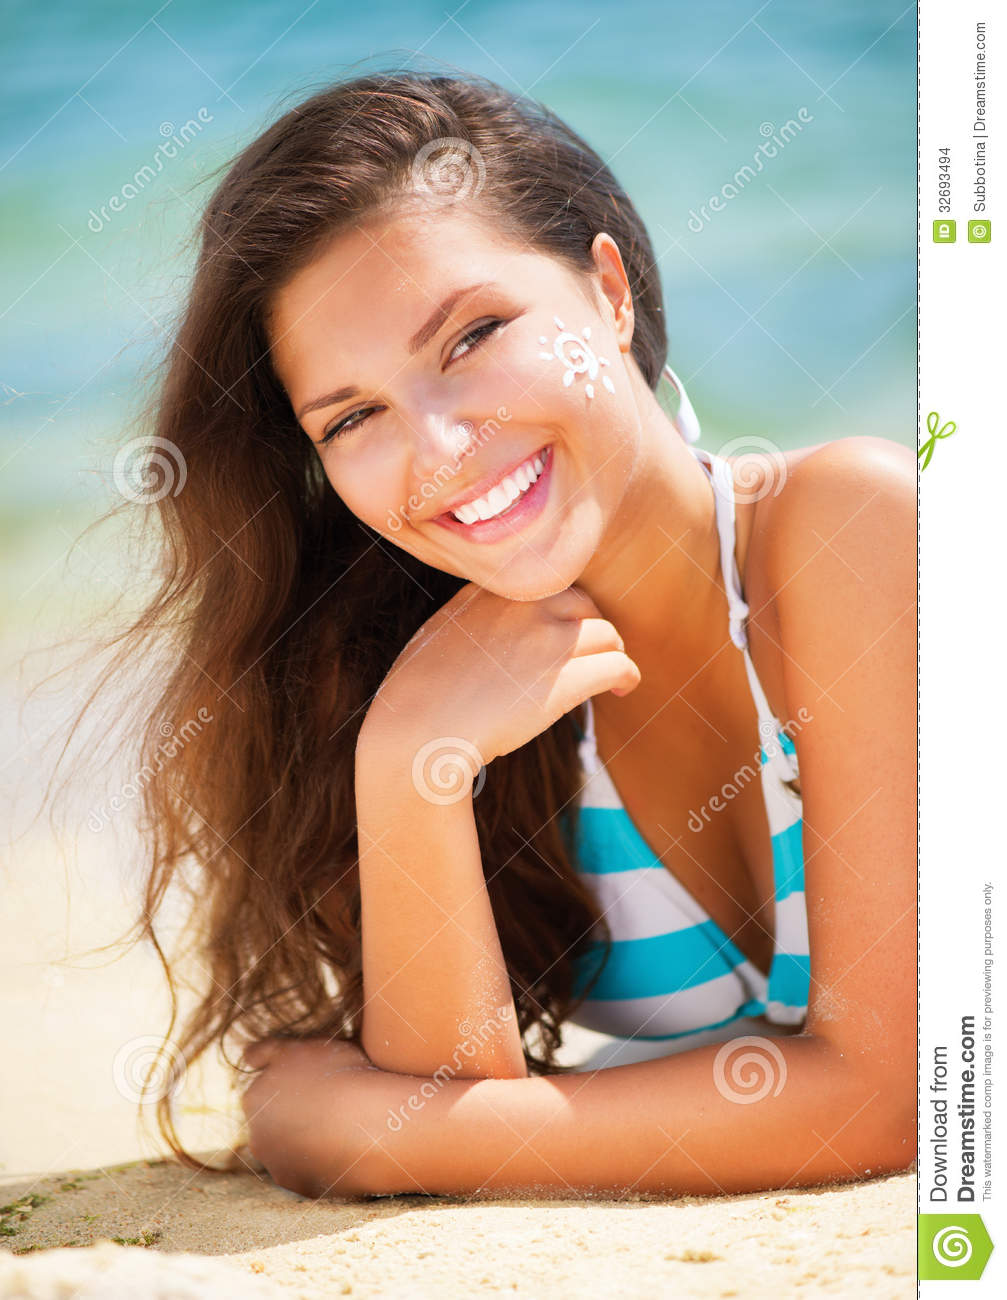 sun tan Seattle sun tan carries various sun tan solutions such as sunbeds, sunless tanning options, anti-aging red light therapy as well as various skincare products.